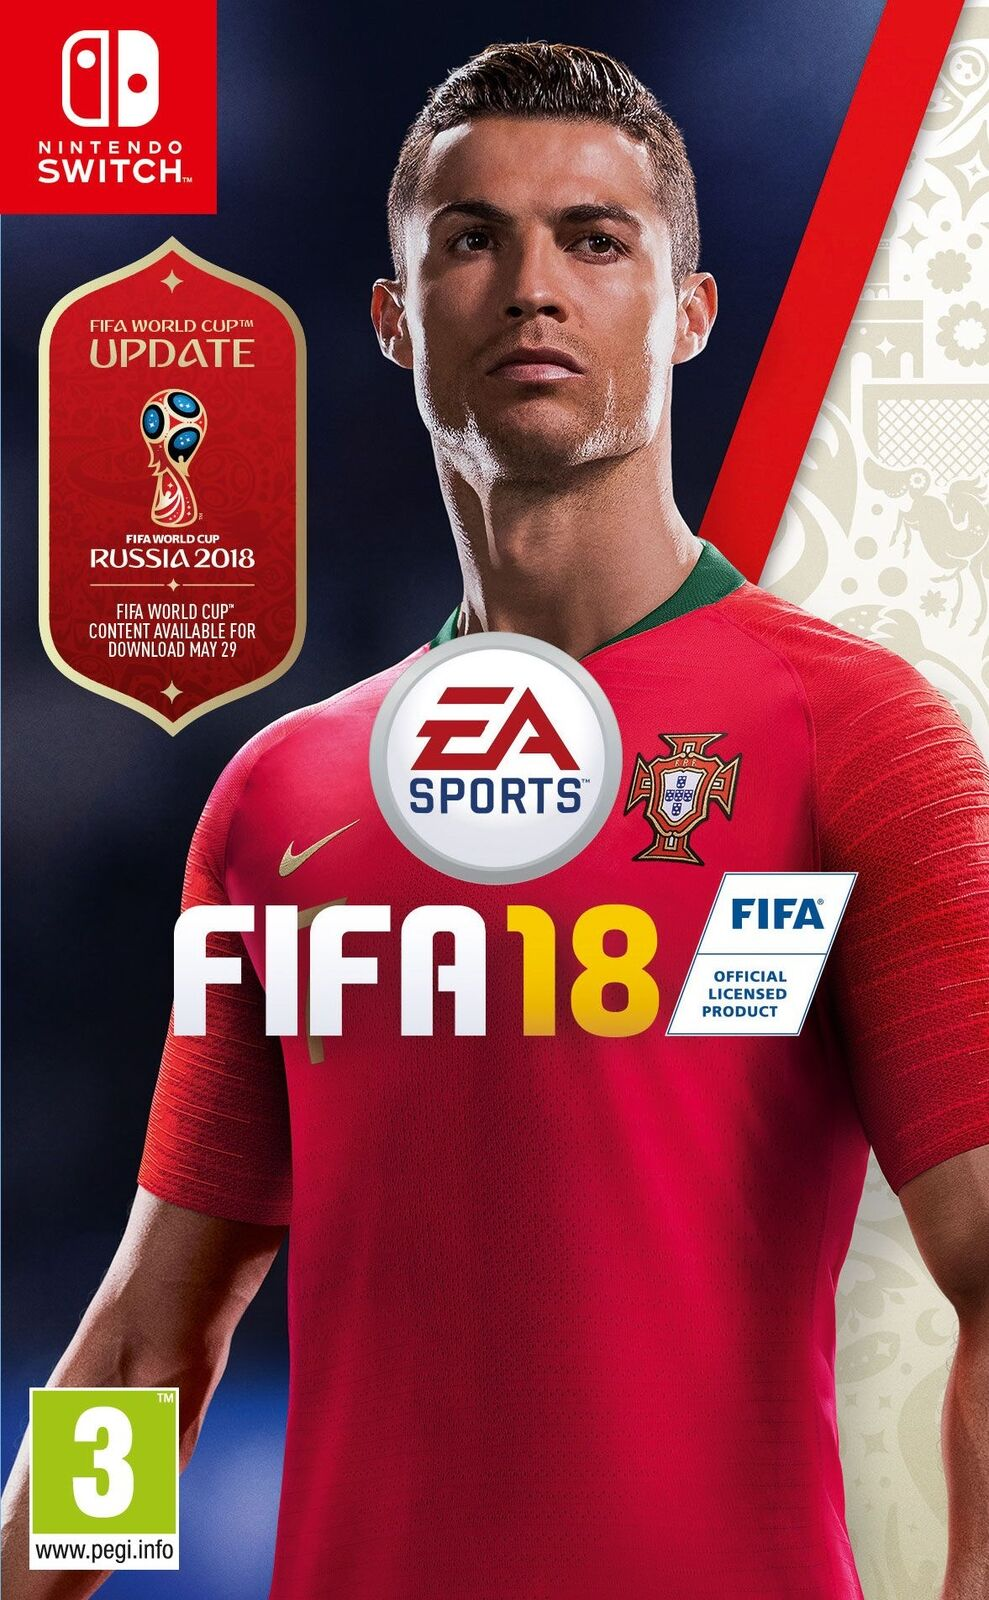 fifa 18 inc fifa 18 world cup russia upgrade nintendo. Black Bedroom Furniture Sets. Home Design Ideas